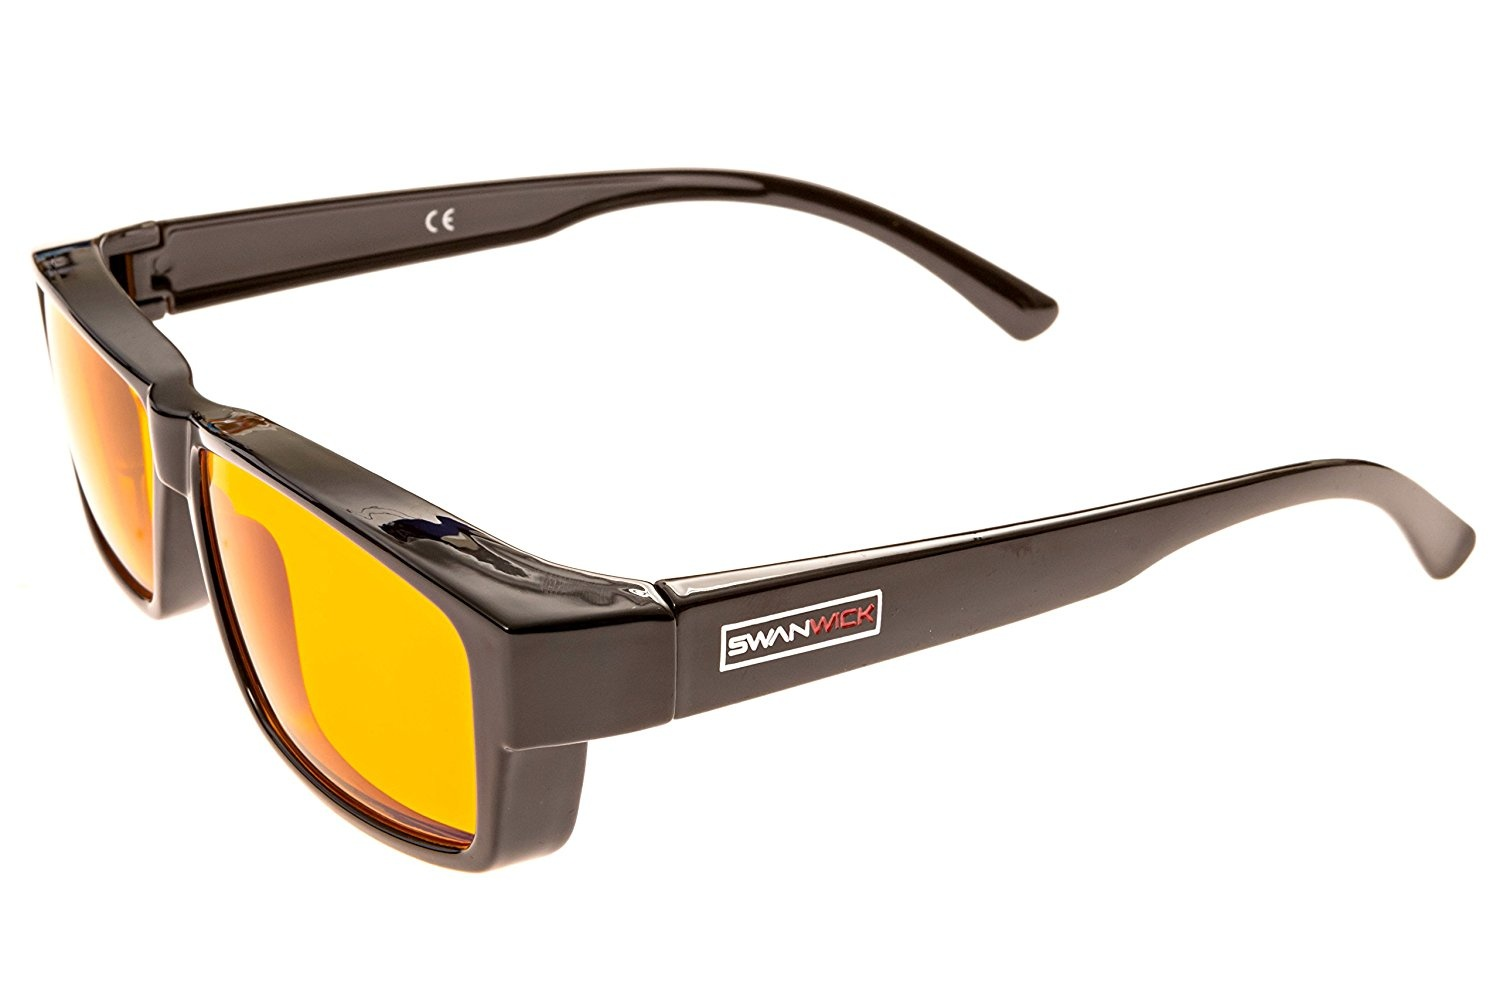 a53788385b Swanwick Sleep Fitover Blue Light Blocking Glasses and Computer ...